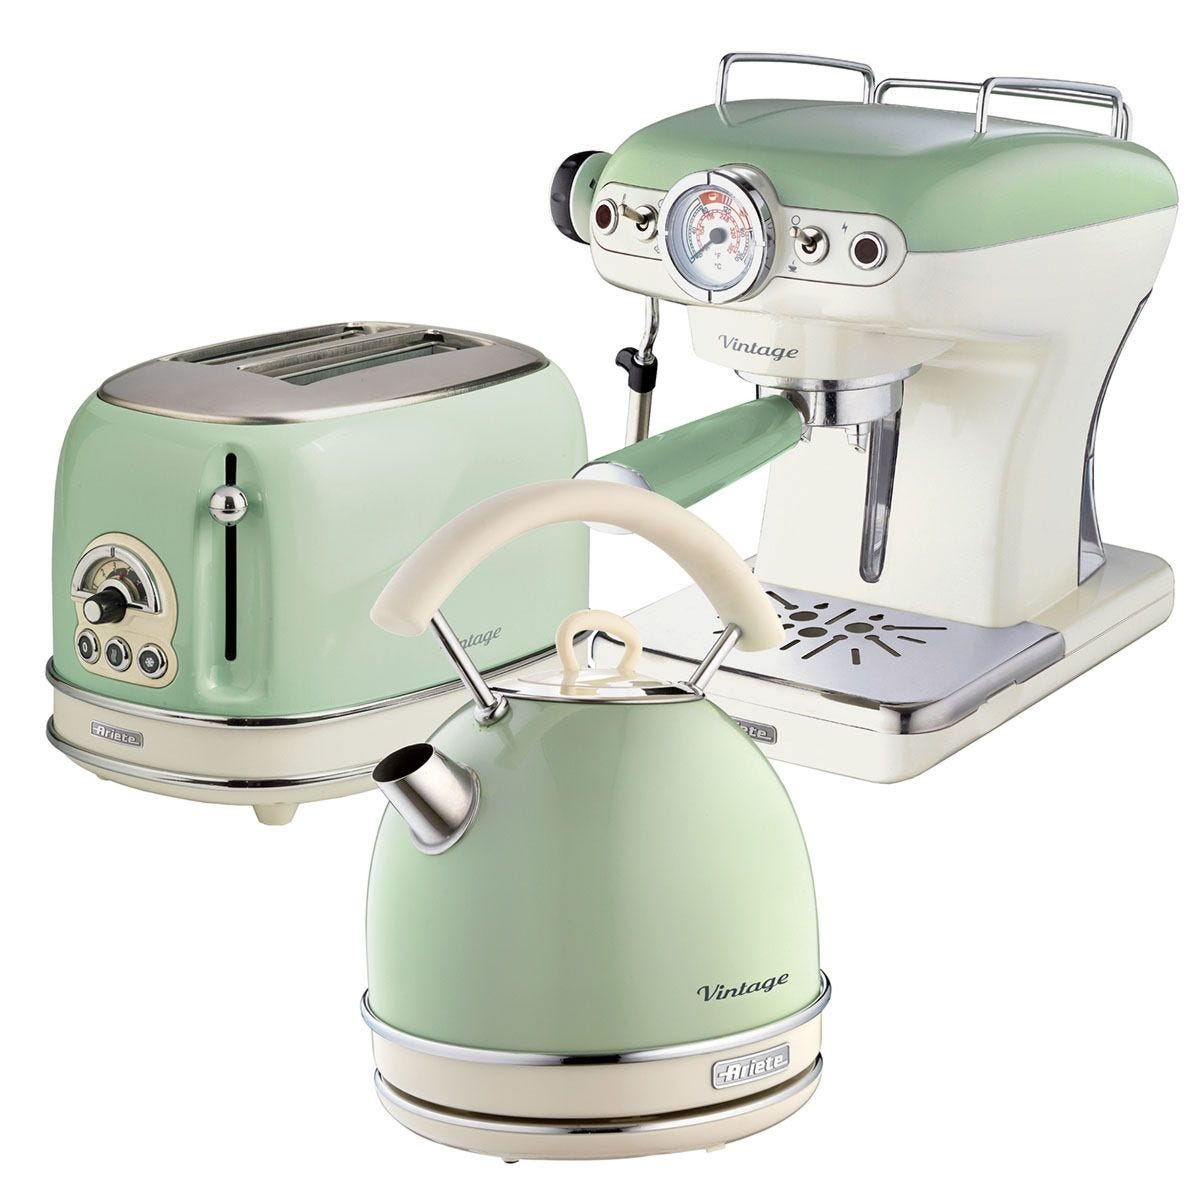 Ariete ARPK17 Vintage 2–Slice Toaster, 1.7L Dome Kettle, and Espresso Coffee Maker – Green